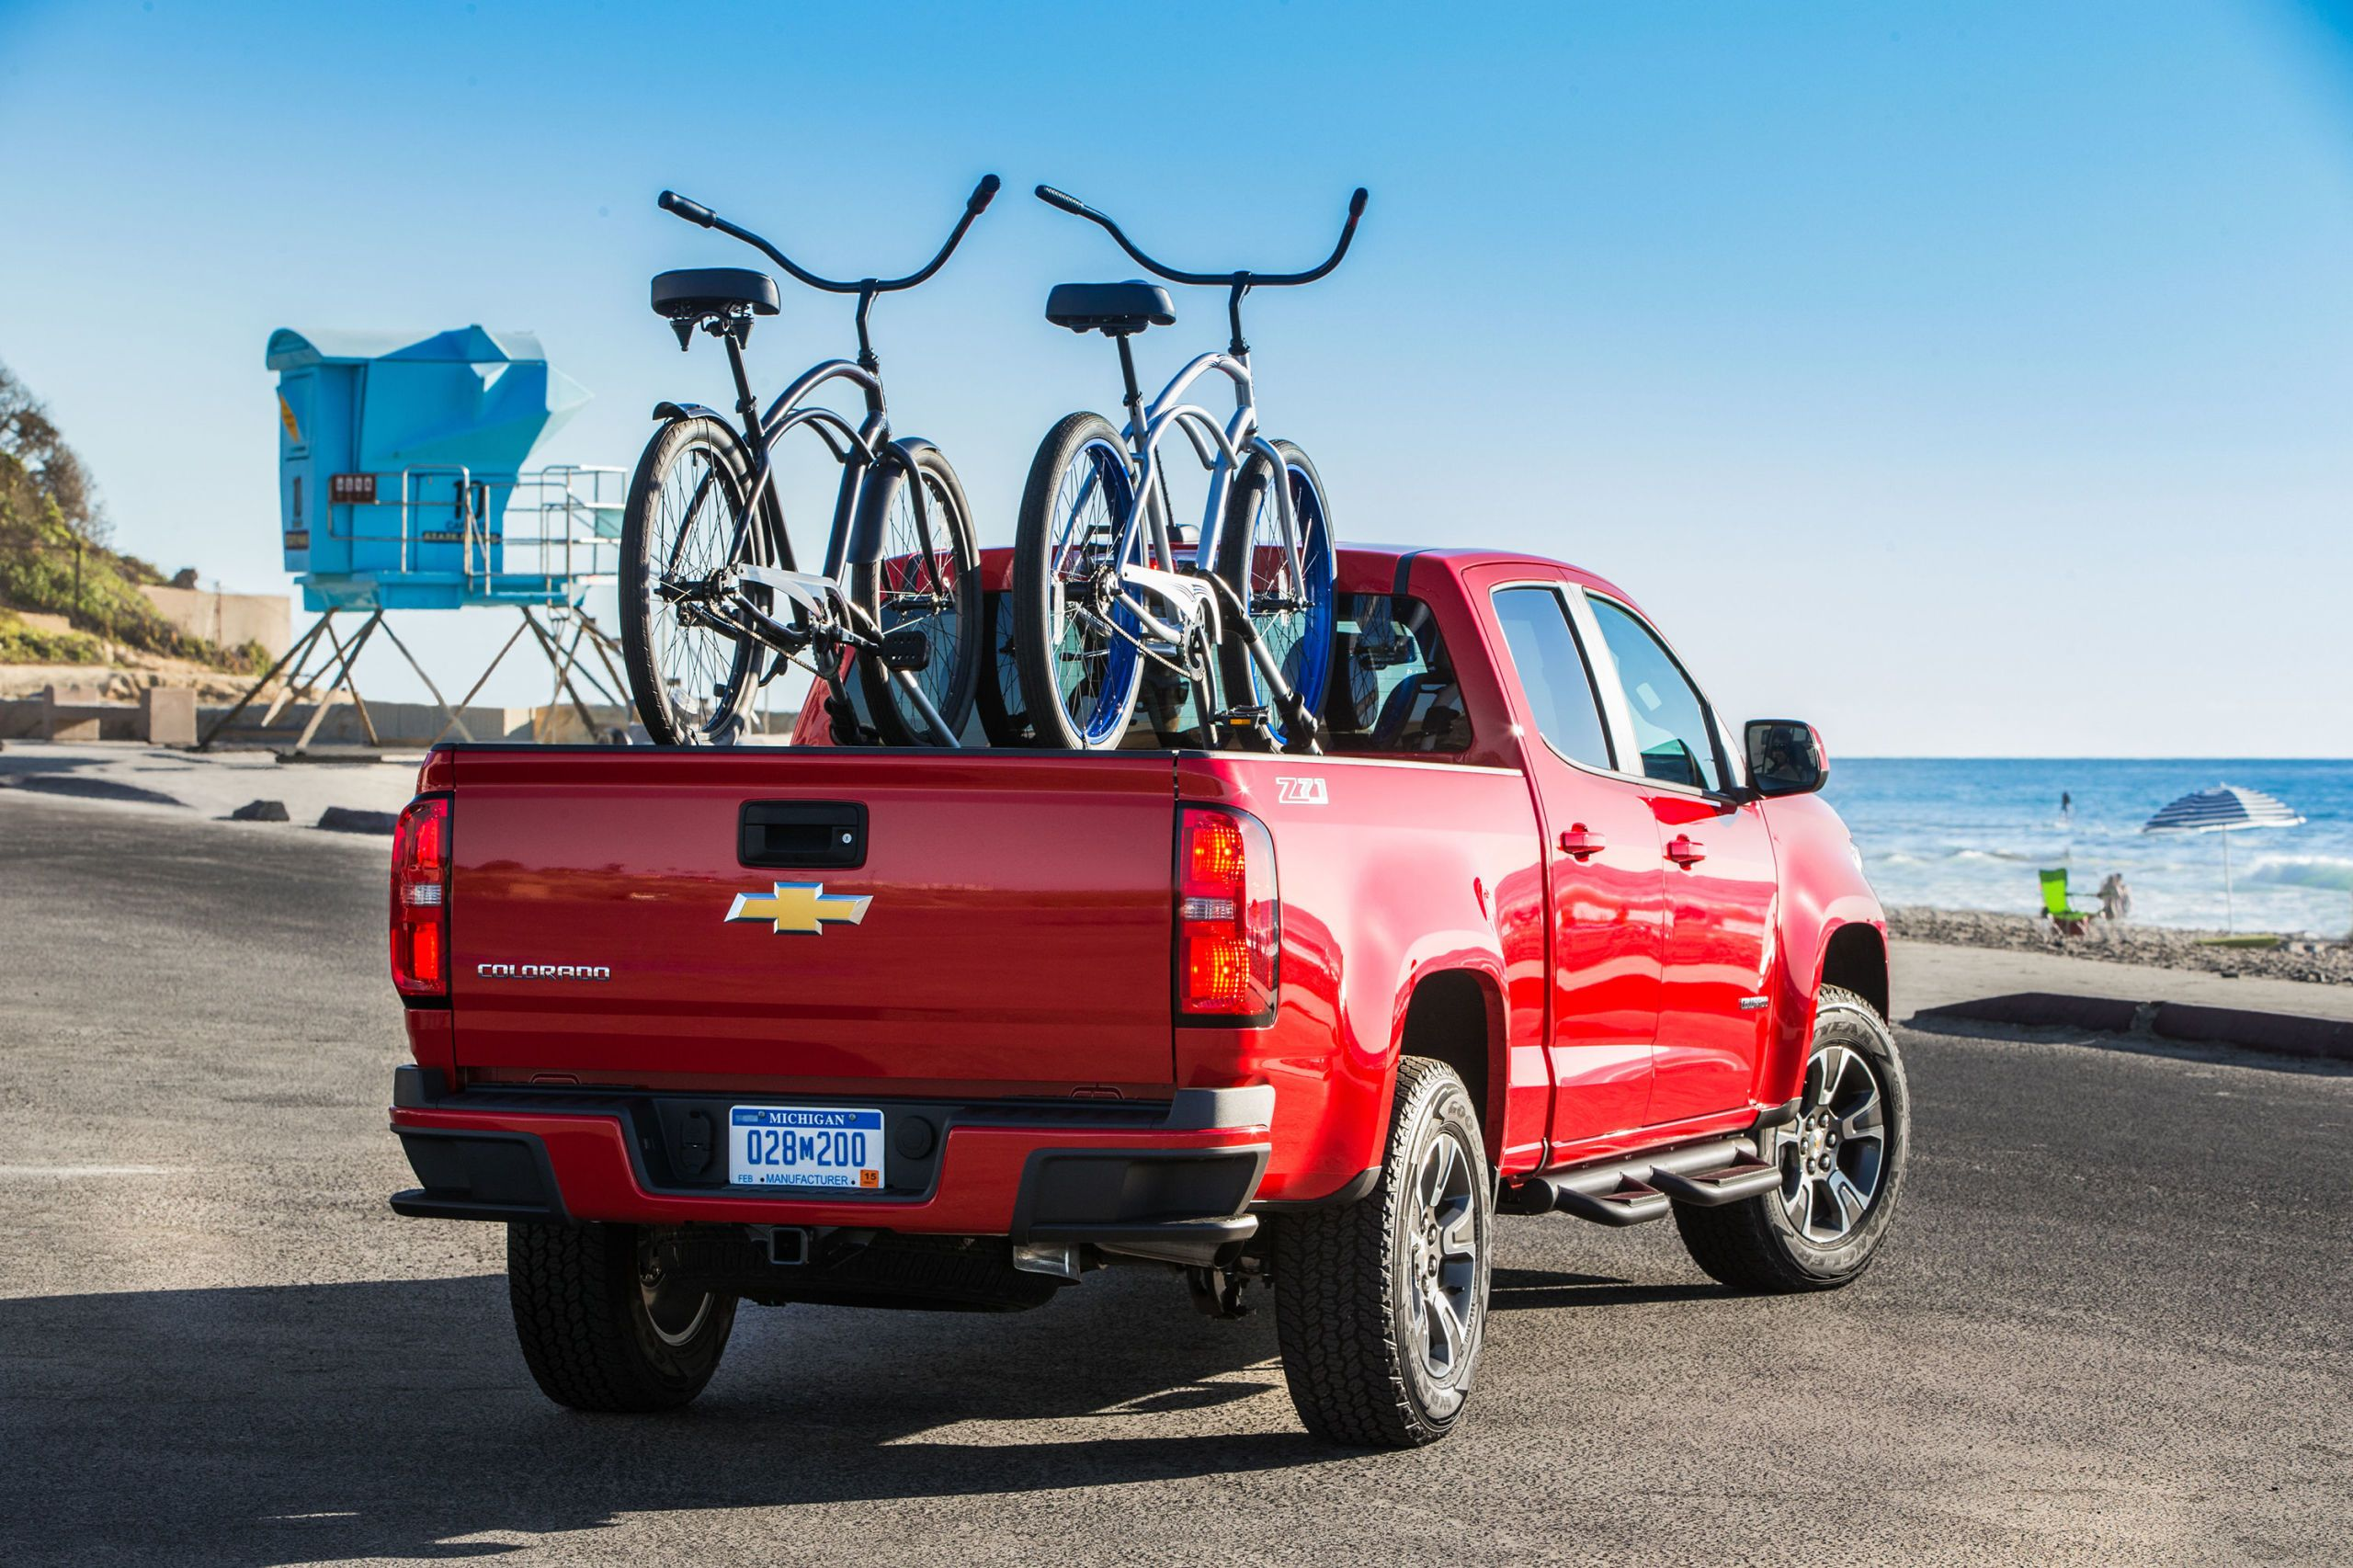 chevy colorado bike racks & The Chevy Colorado: An Urban and Active Pickup Lovers Dream